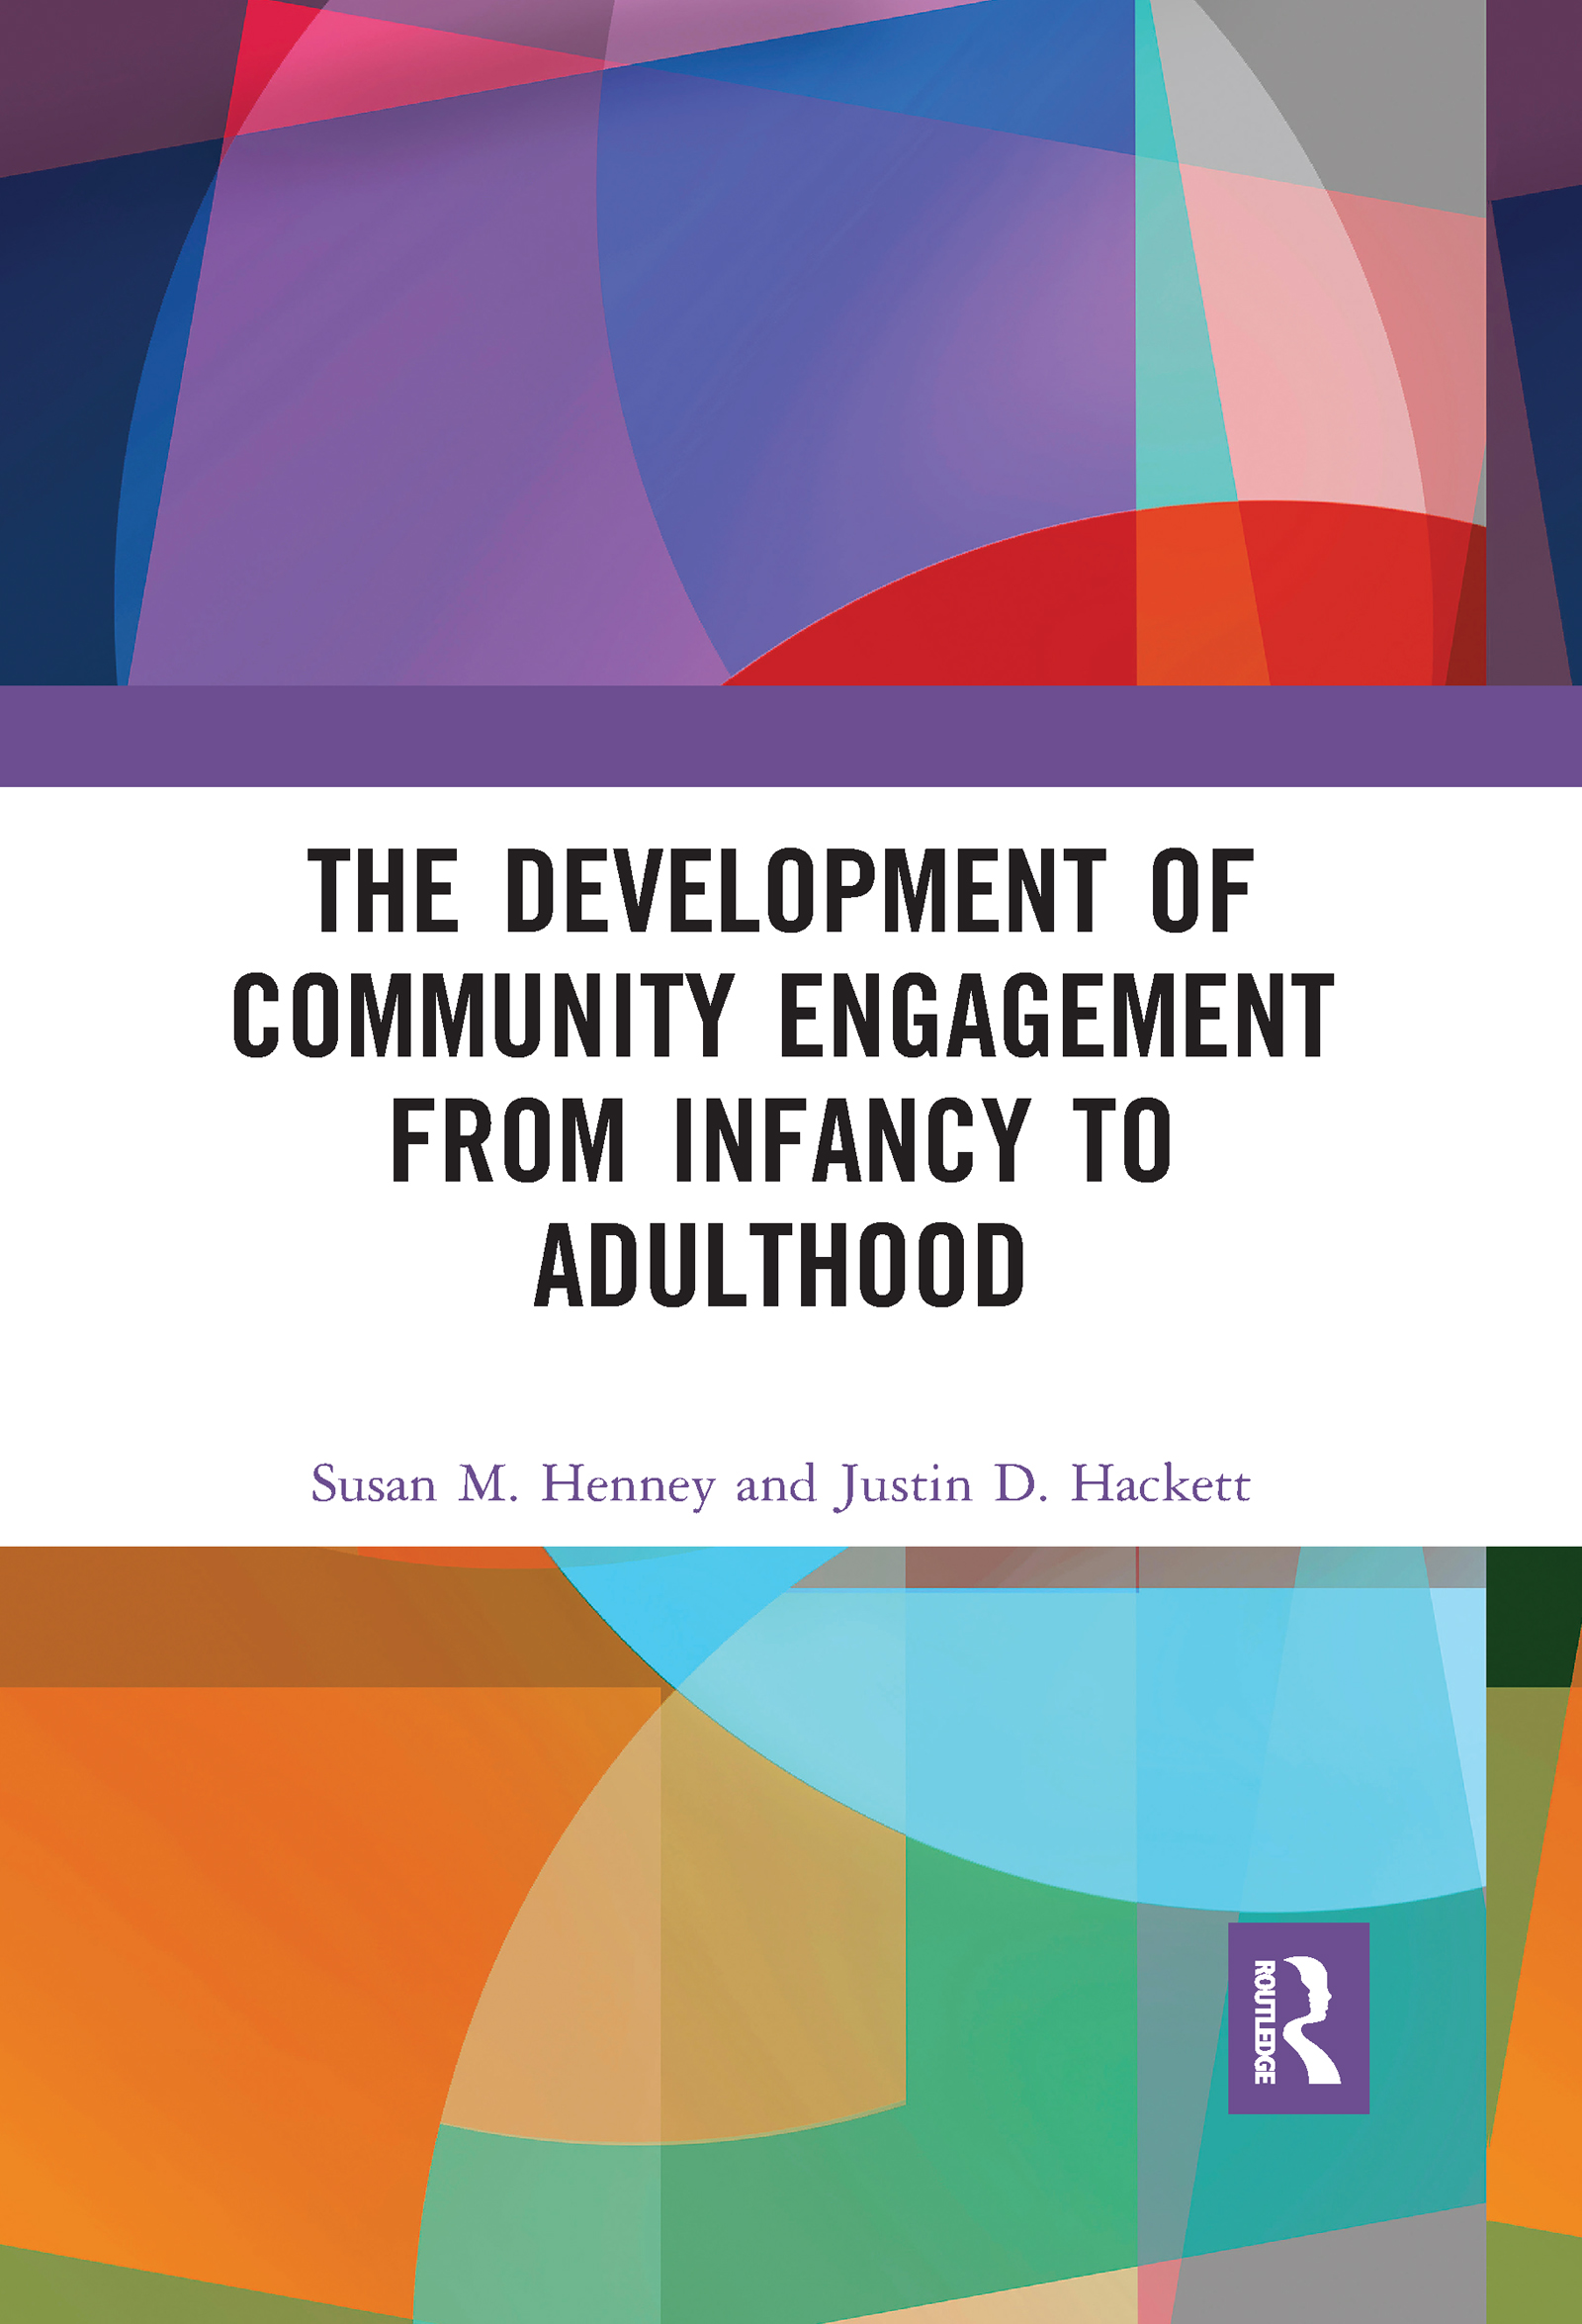 The Development of Community Engagement from Infancy to Adulthood